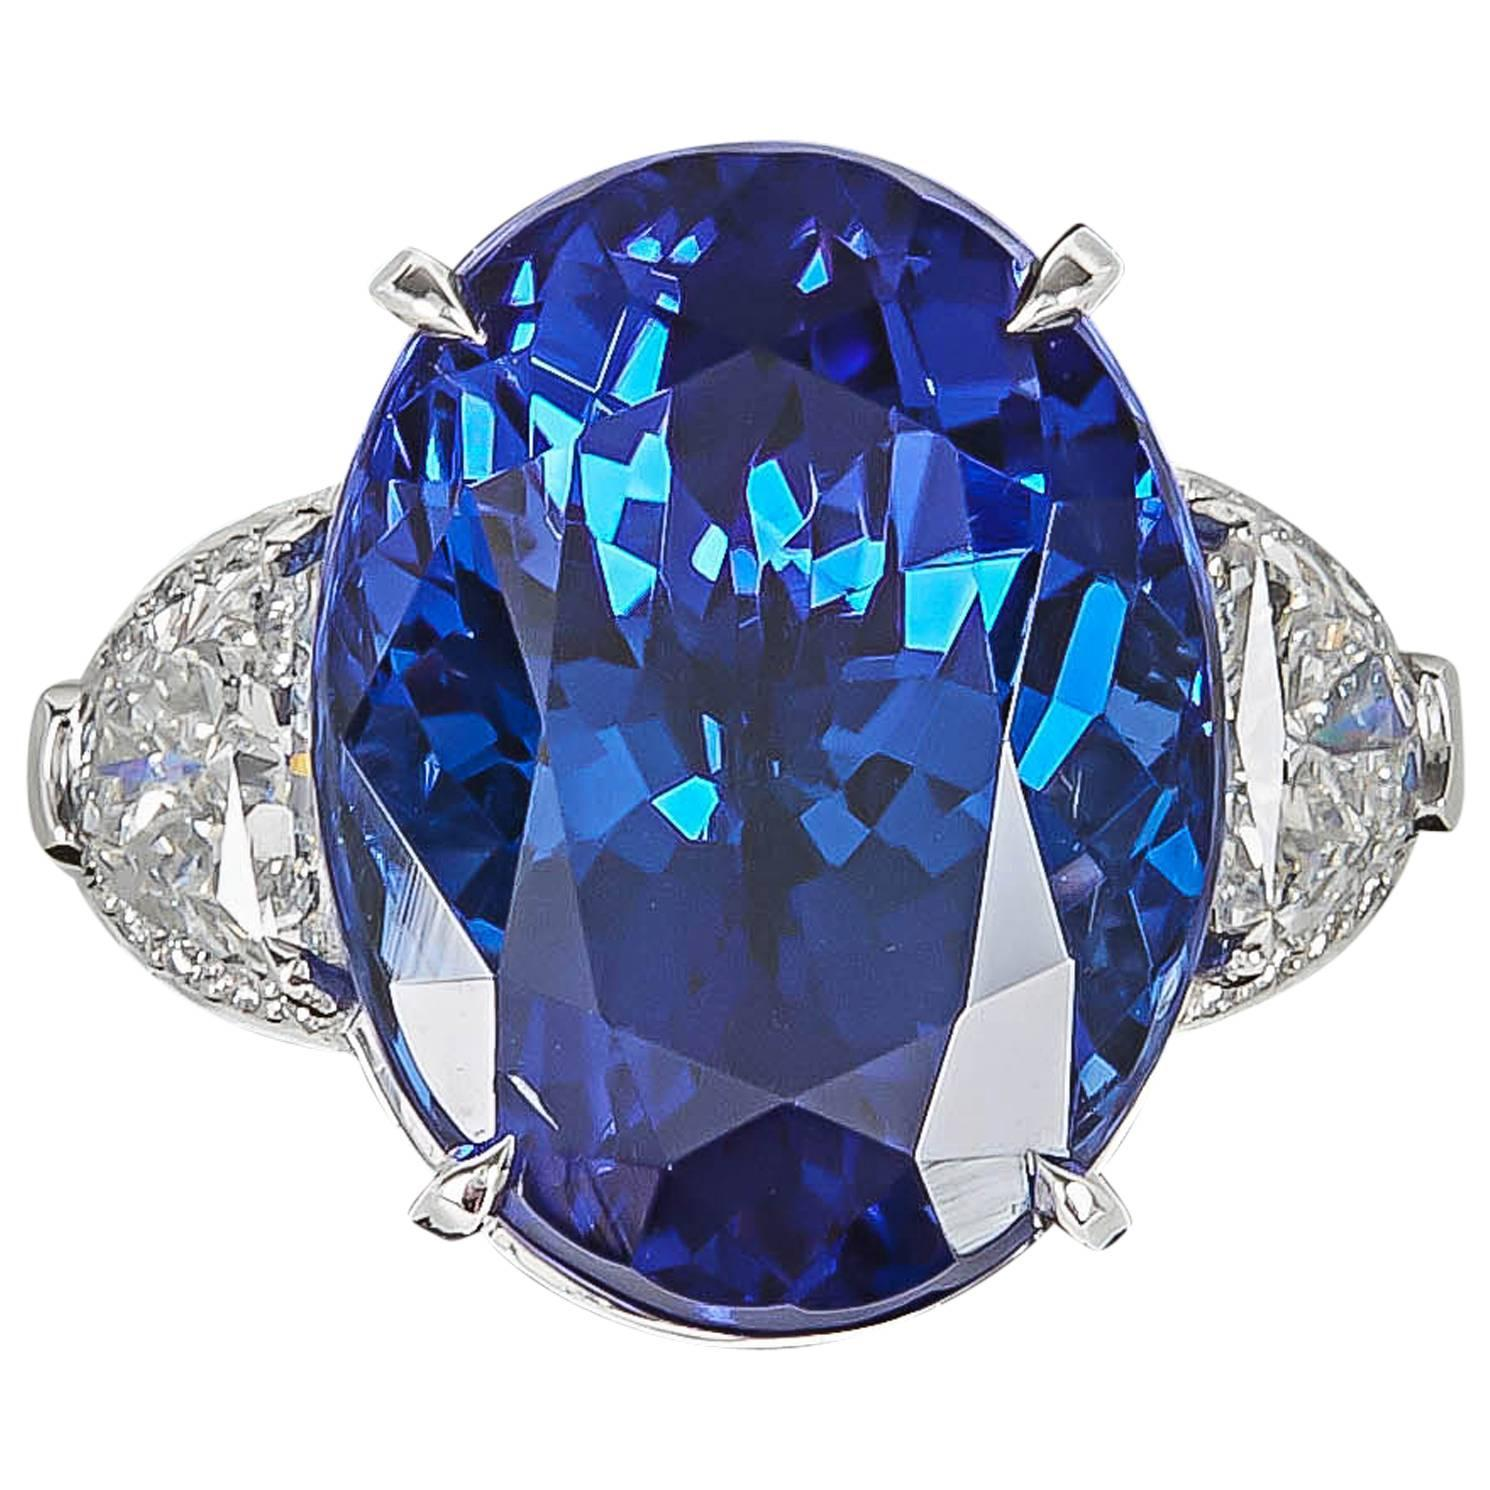 royal burma gauche rings carat designer original star ring engagement blue jewelry rive antique vintage sapphire